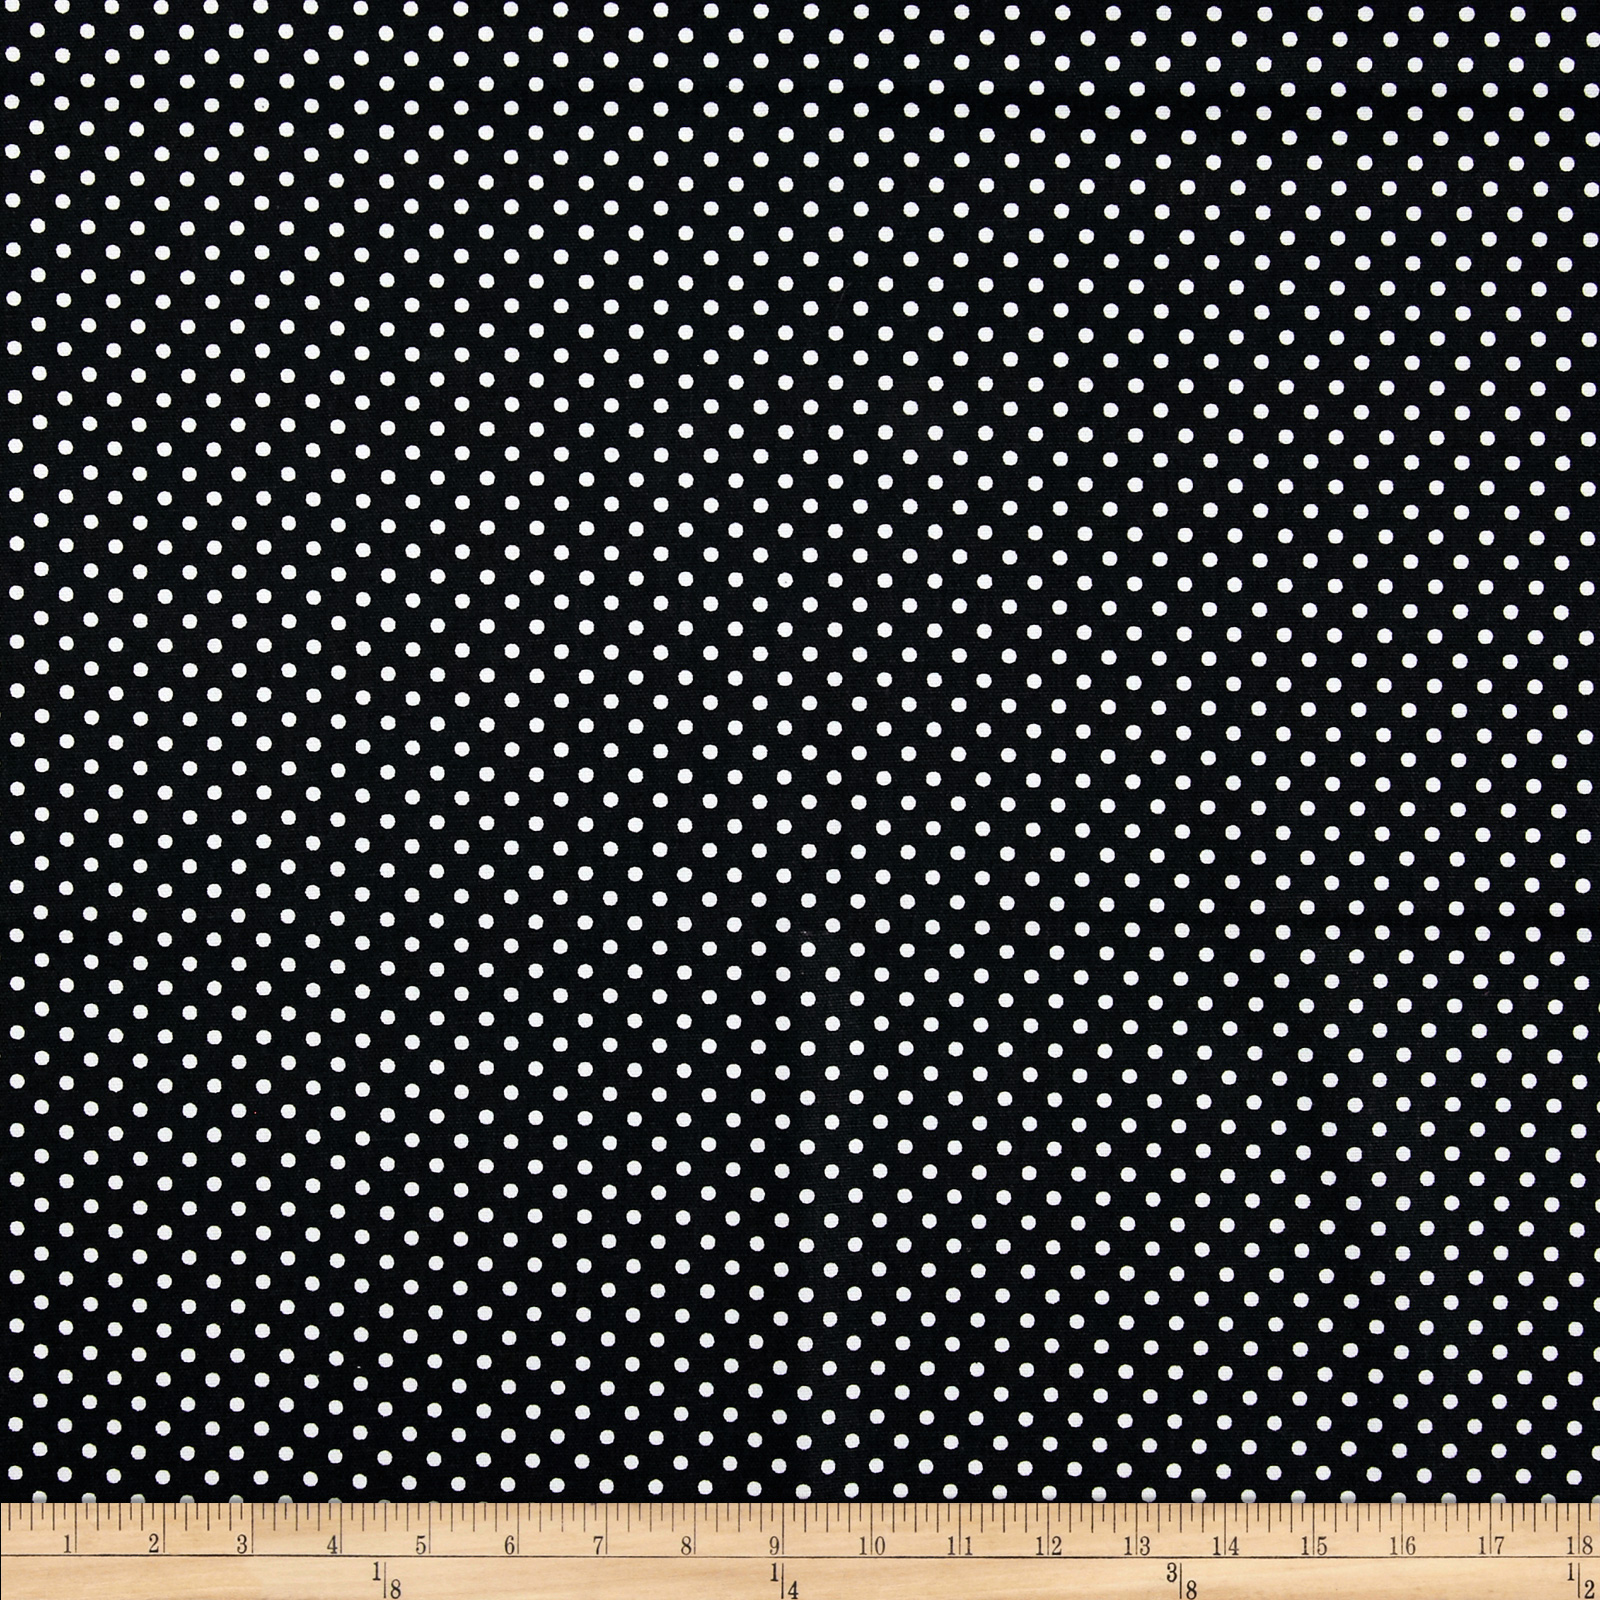 Premier Prints Dottie Black/White Fabric